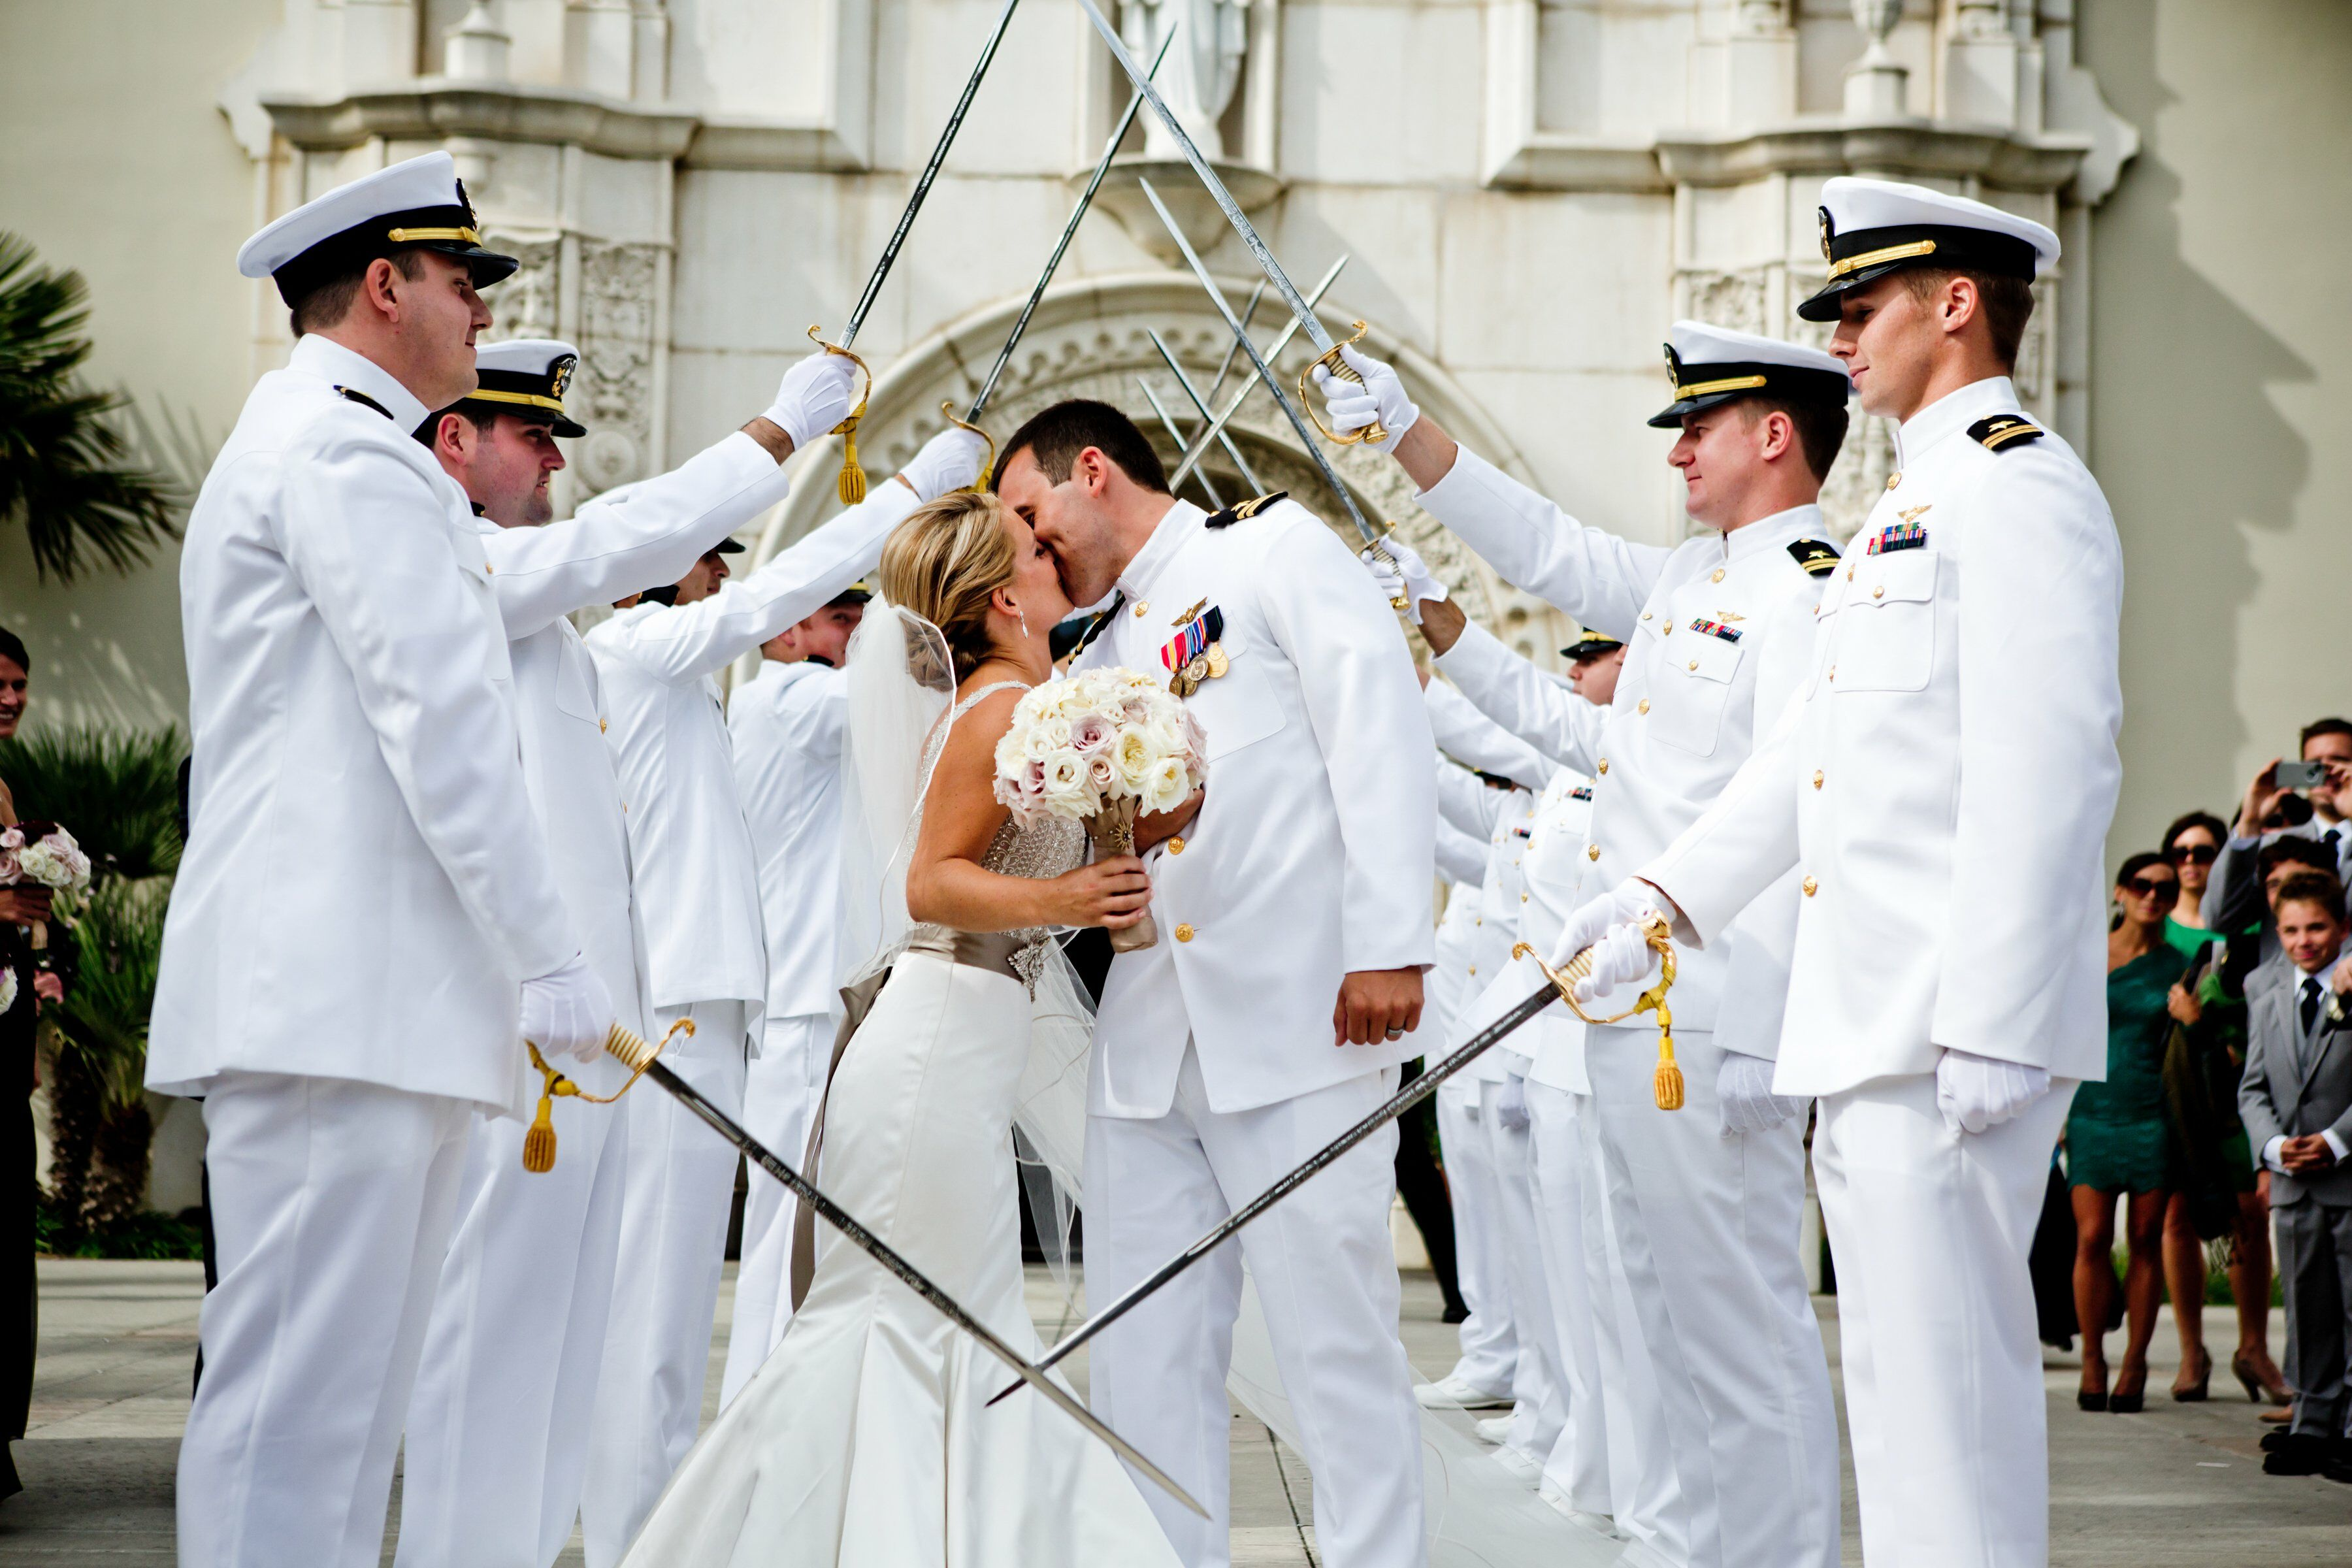 Wedding Gifts For Military Couples: Arch Of Swords Military Ceremony